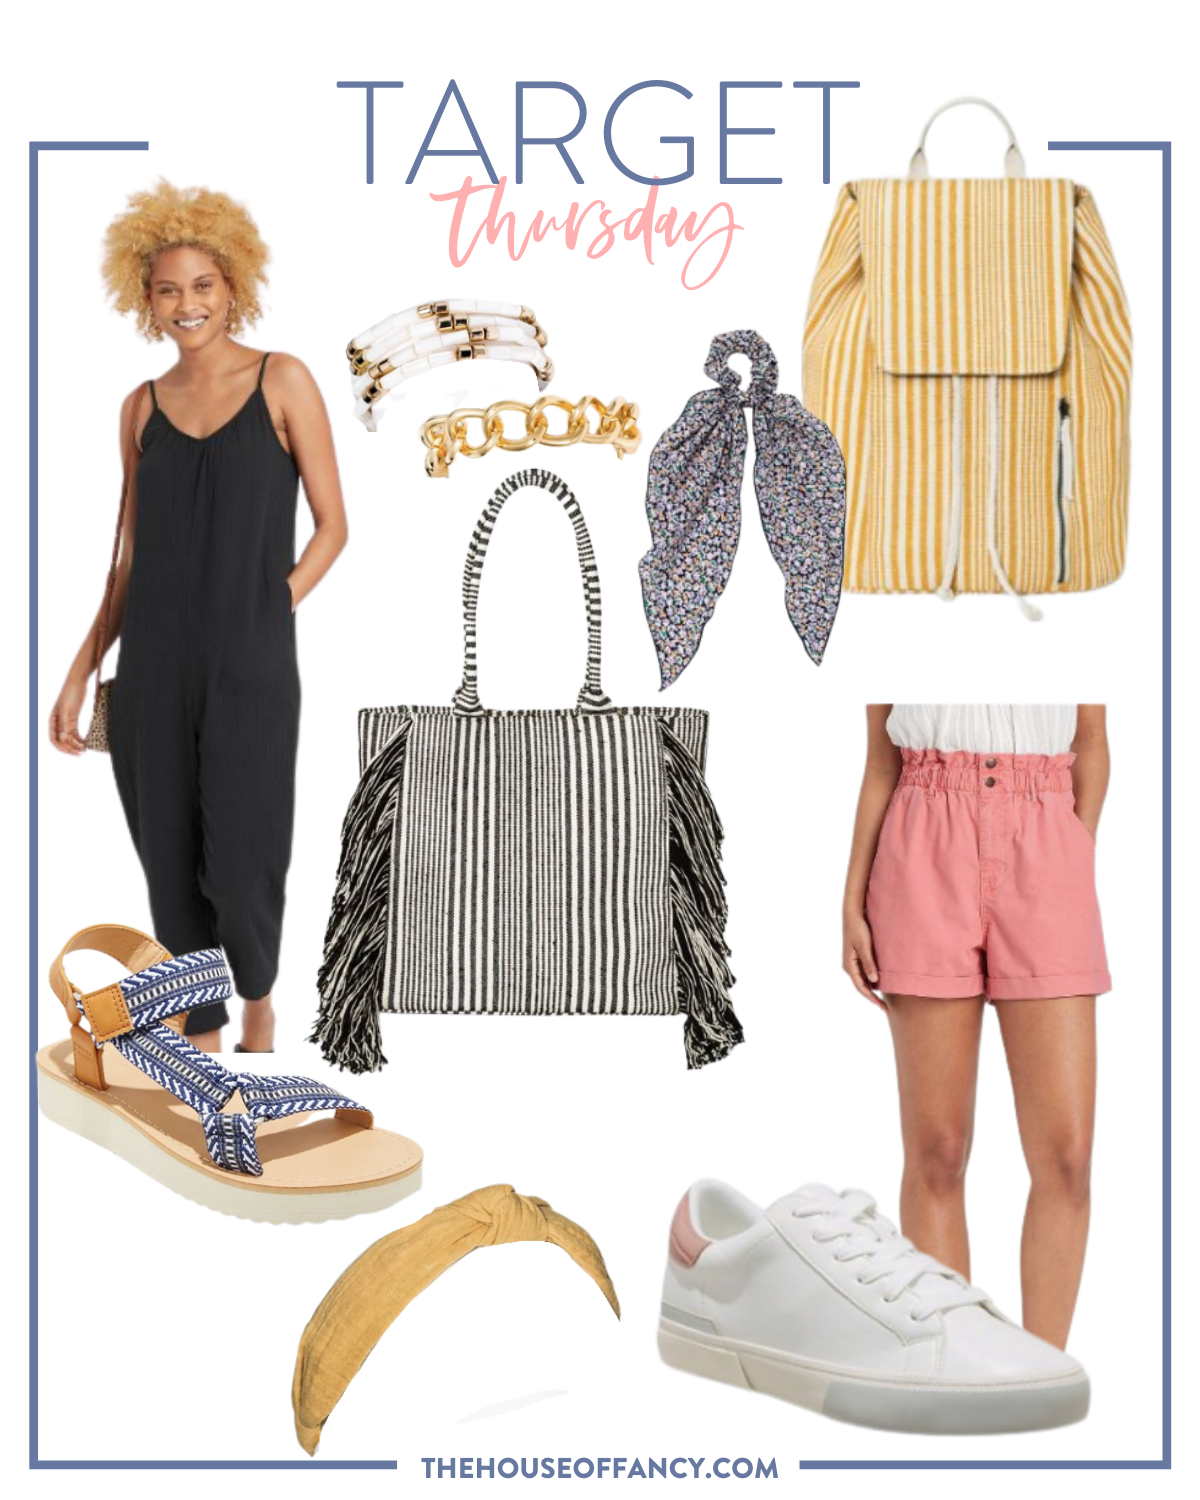 Target New Arrivals by popular Houston fashion blog, The House of Fancy: collage image of a black jumper, pink paper bag shorts, yellow and white stripe backpack, floral hair scrunch, black and white stripe tote, gold chain link bracelet, yellow knot headband, white sneakers, and blue and white fabric strap sandals.